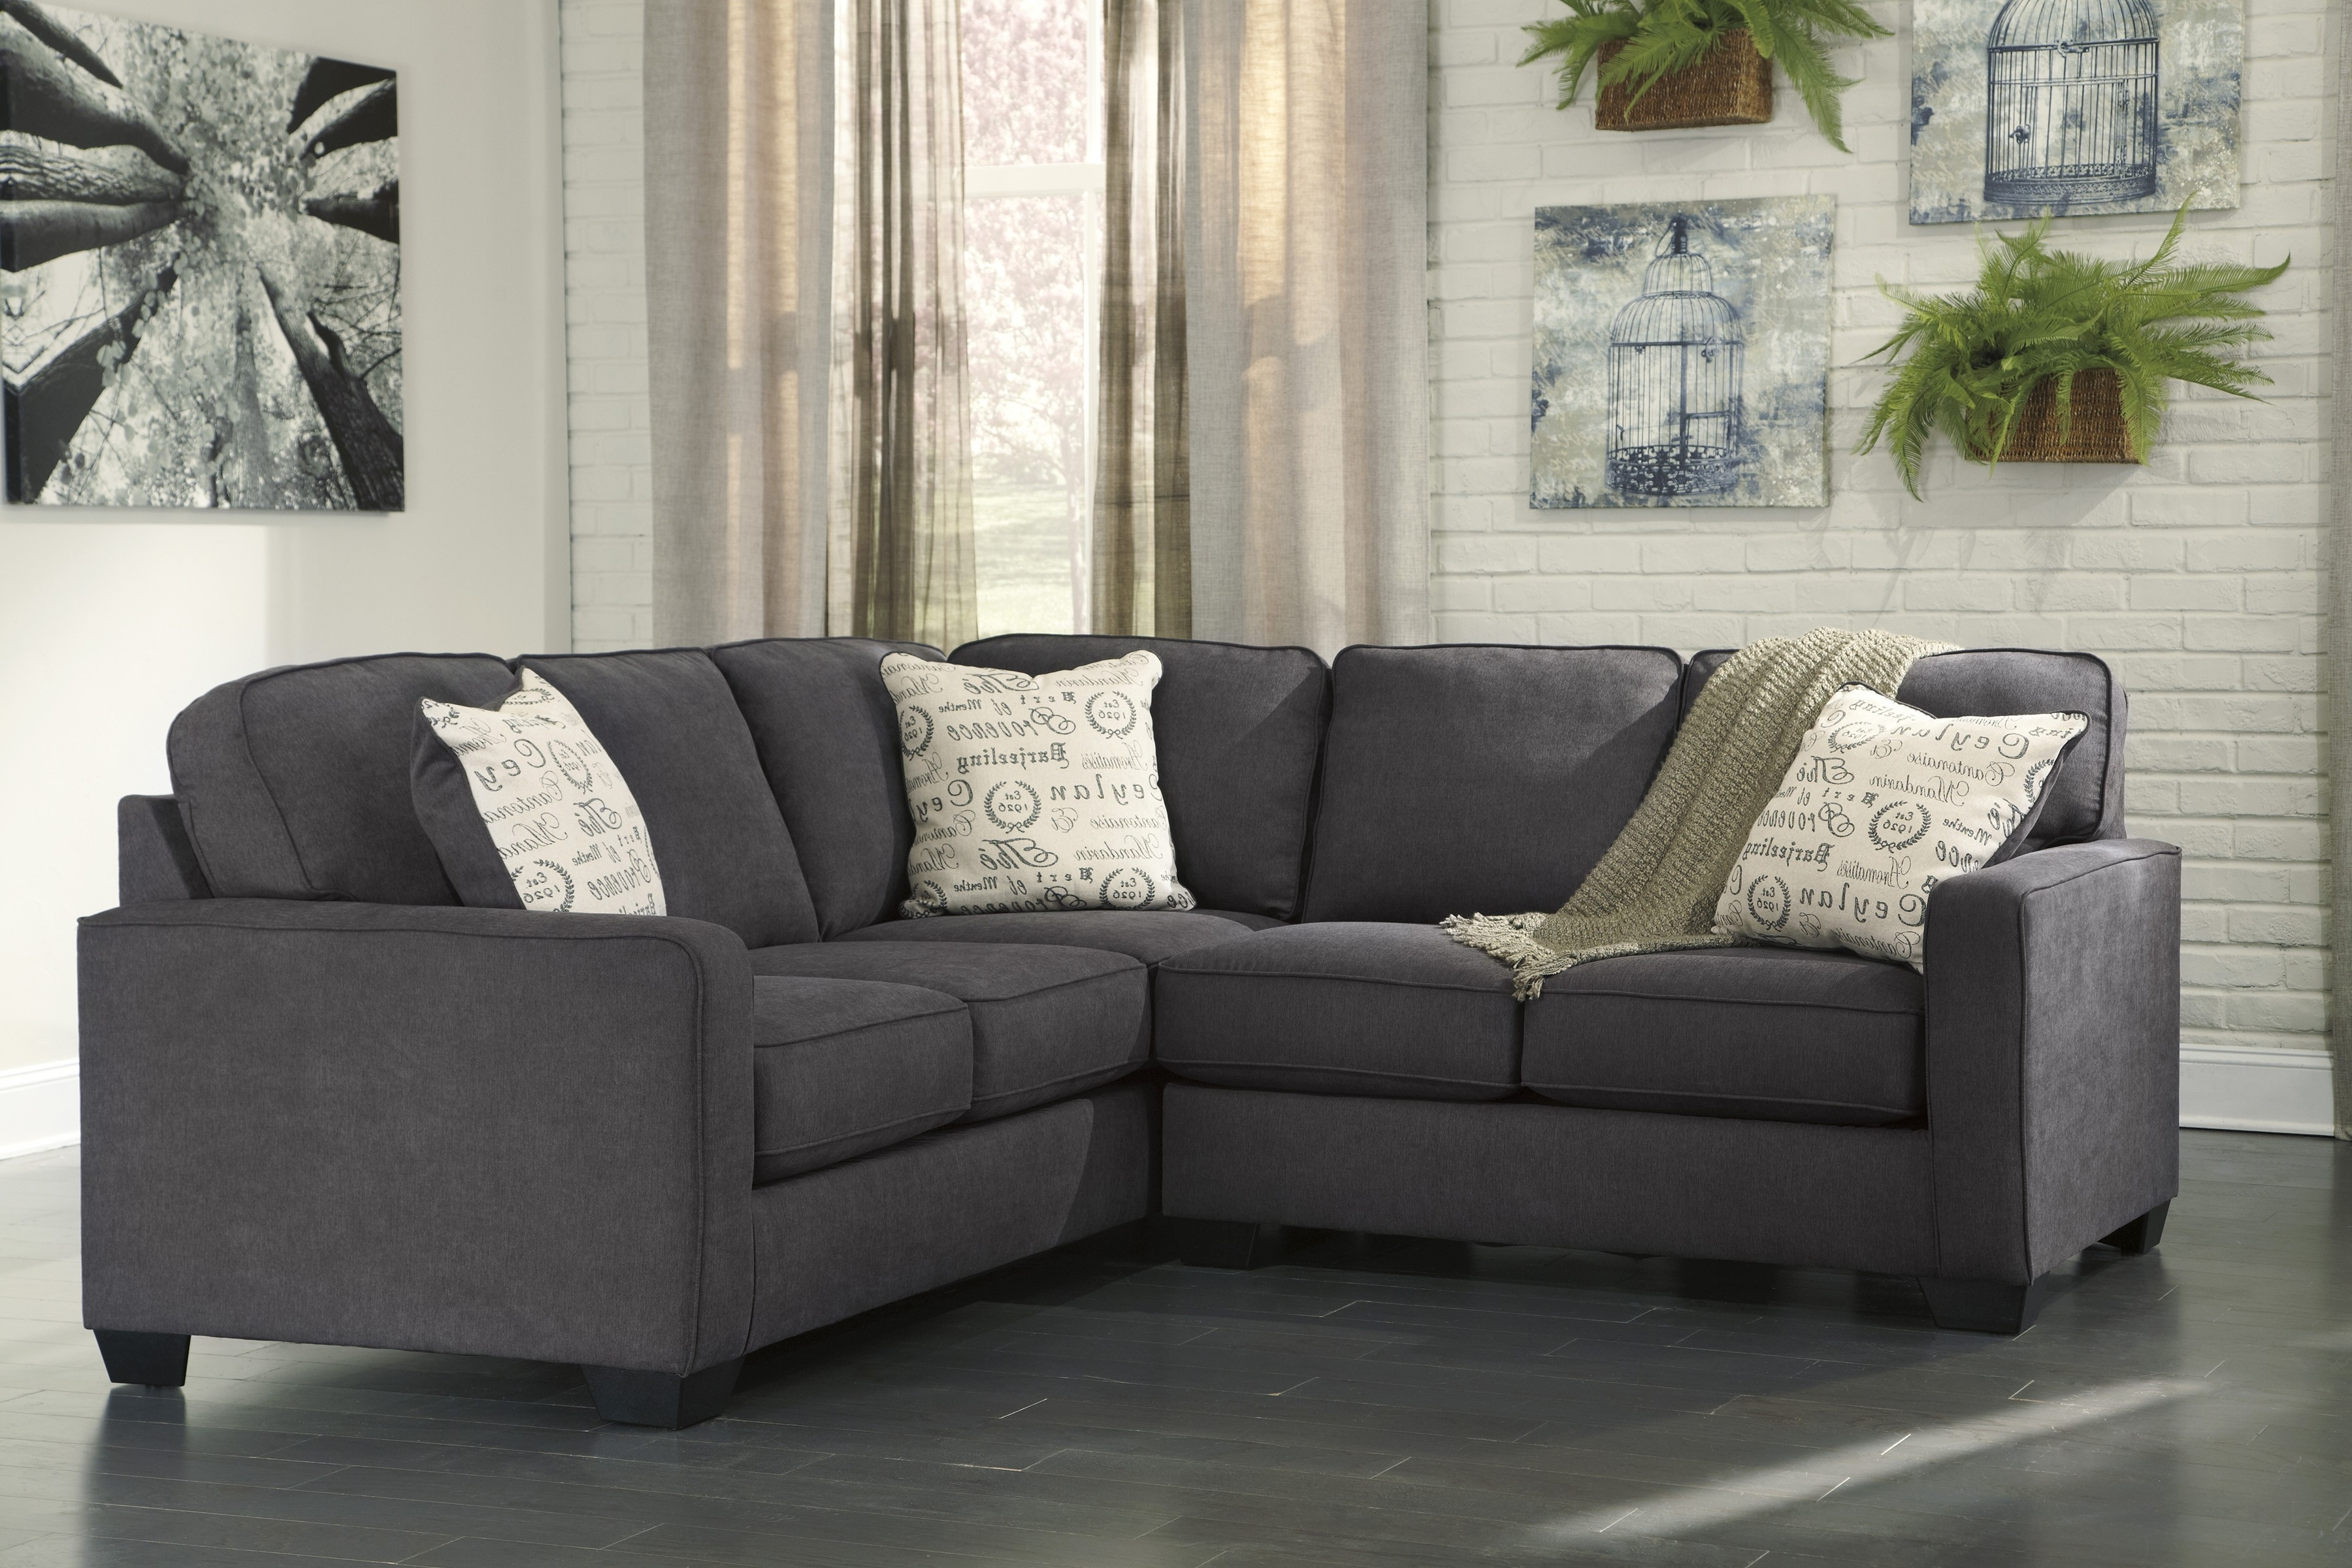 Alenya Charcoal Piece Sectional Sofa For Furnitureusa Raf Love Tures with Aspen 2 Piece Sleeper Sectionals With Laf Chaise (Image 2 of 30)